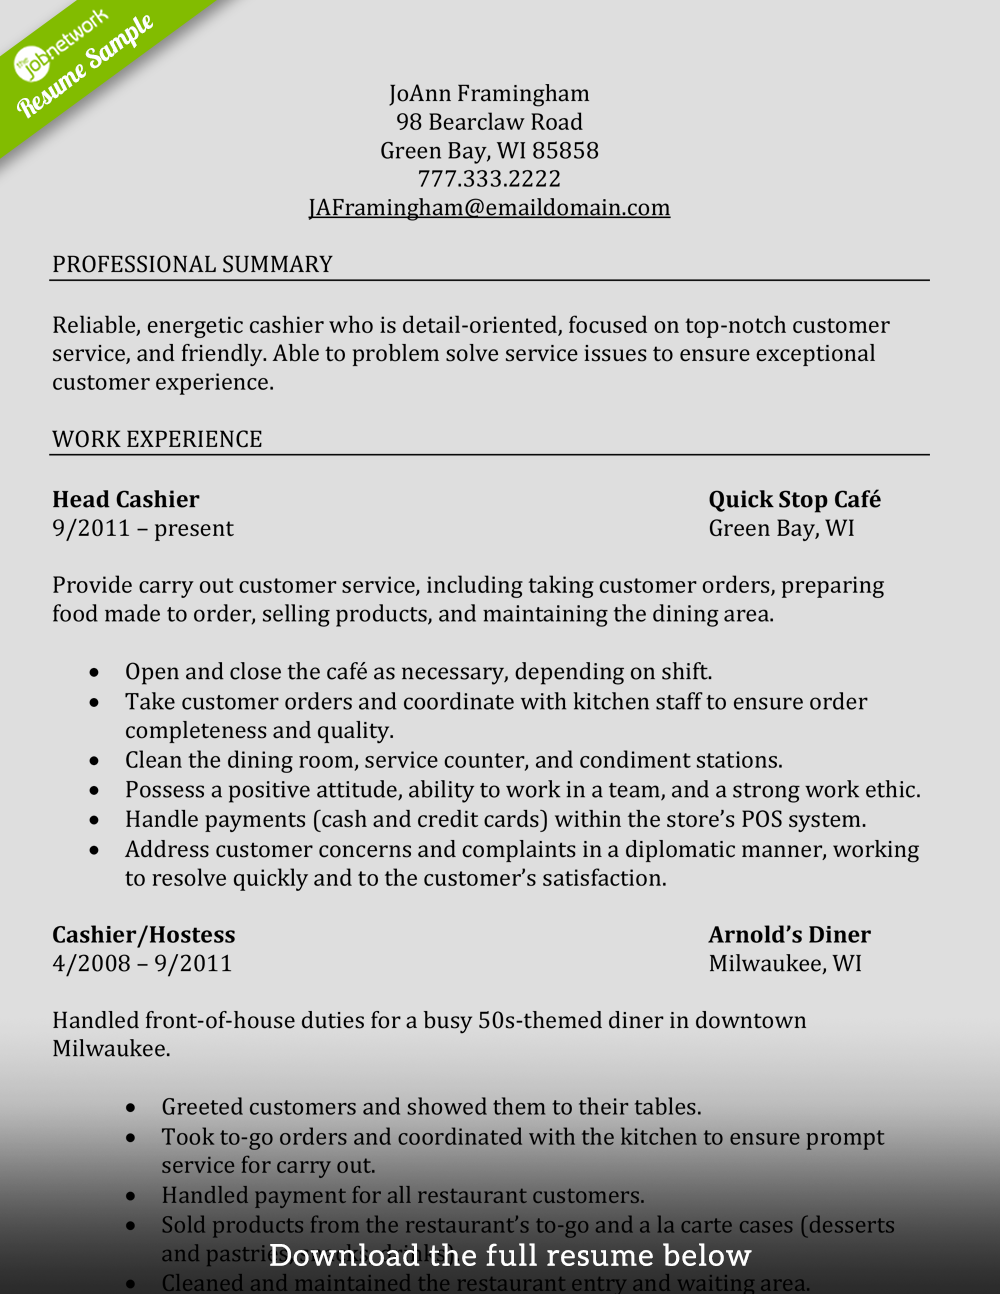 Cashier Resume Experienced Restaurant  Customer Services Resume